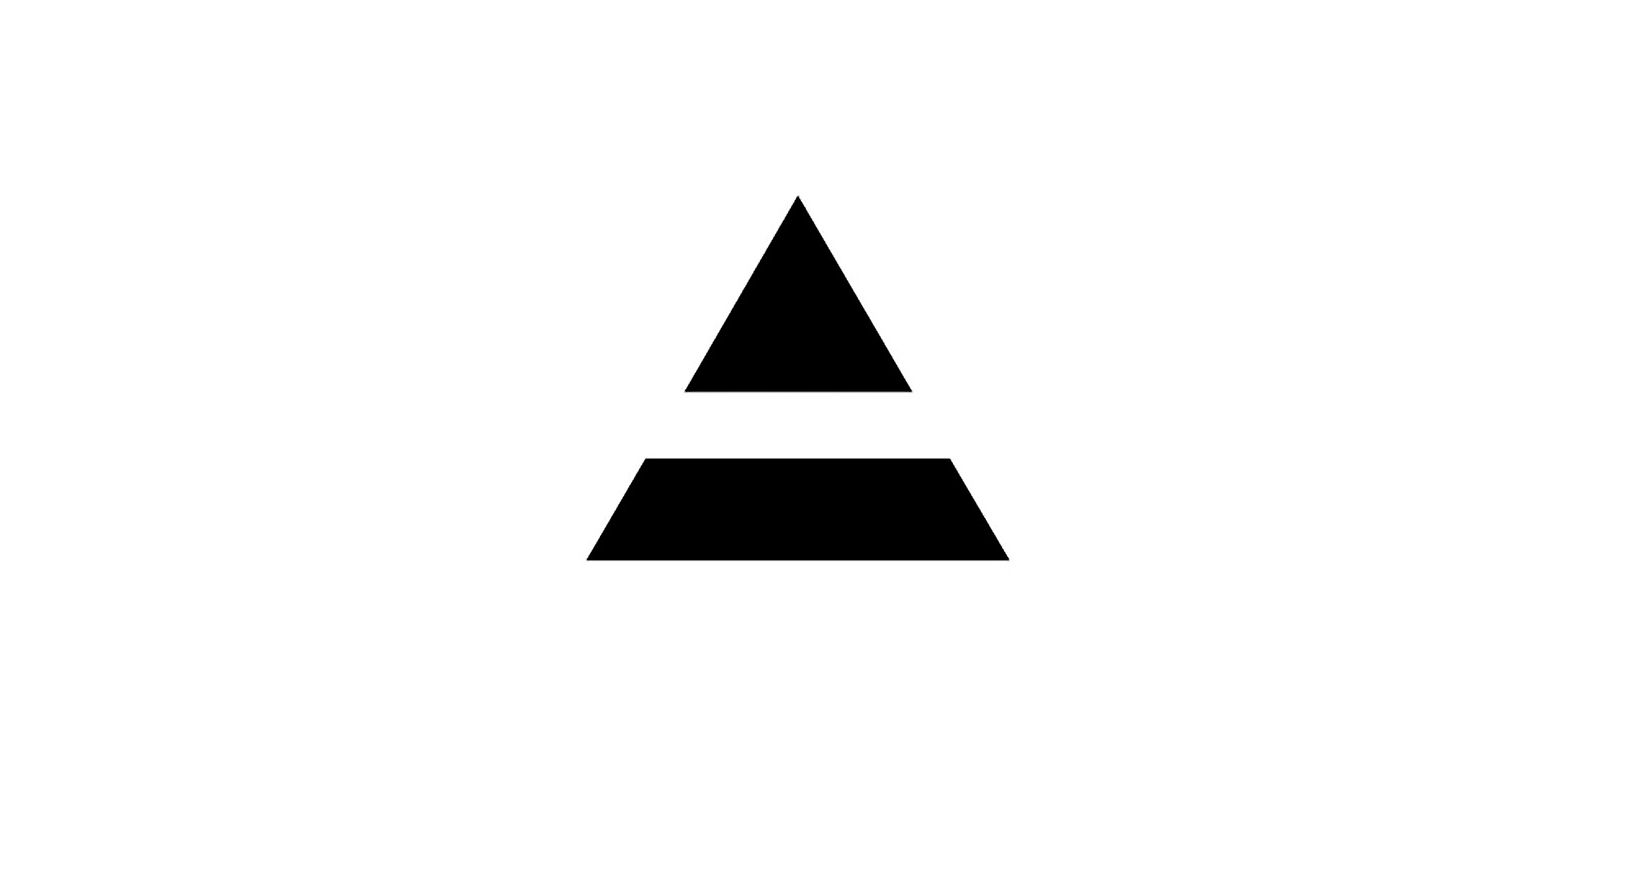 30 Seconds To Mars Band Logos Pinterest 30 Seconds Tattoo Ink